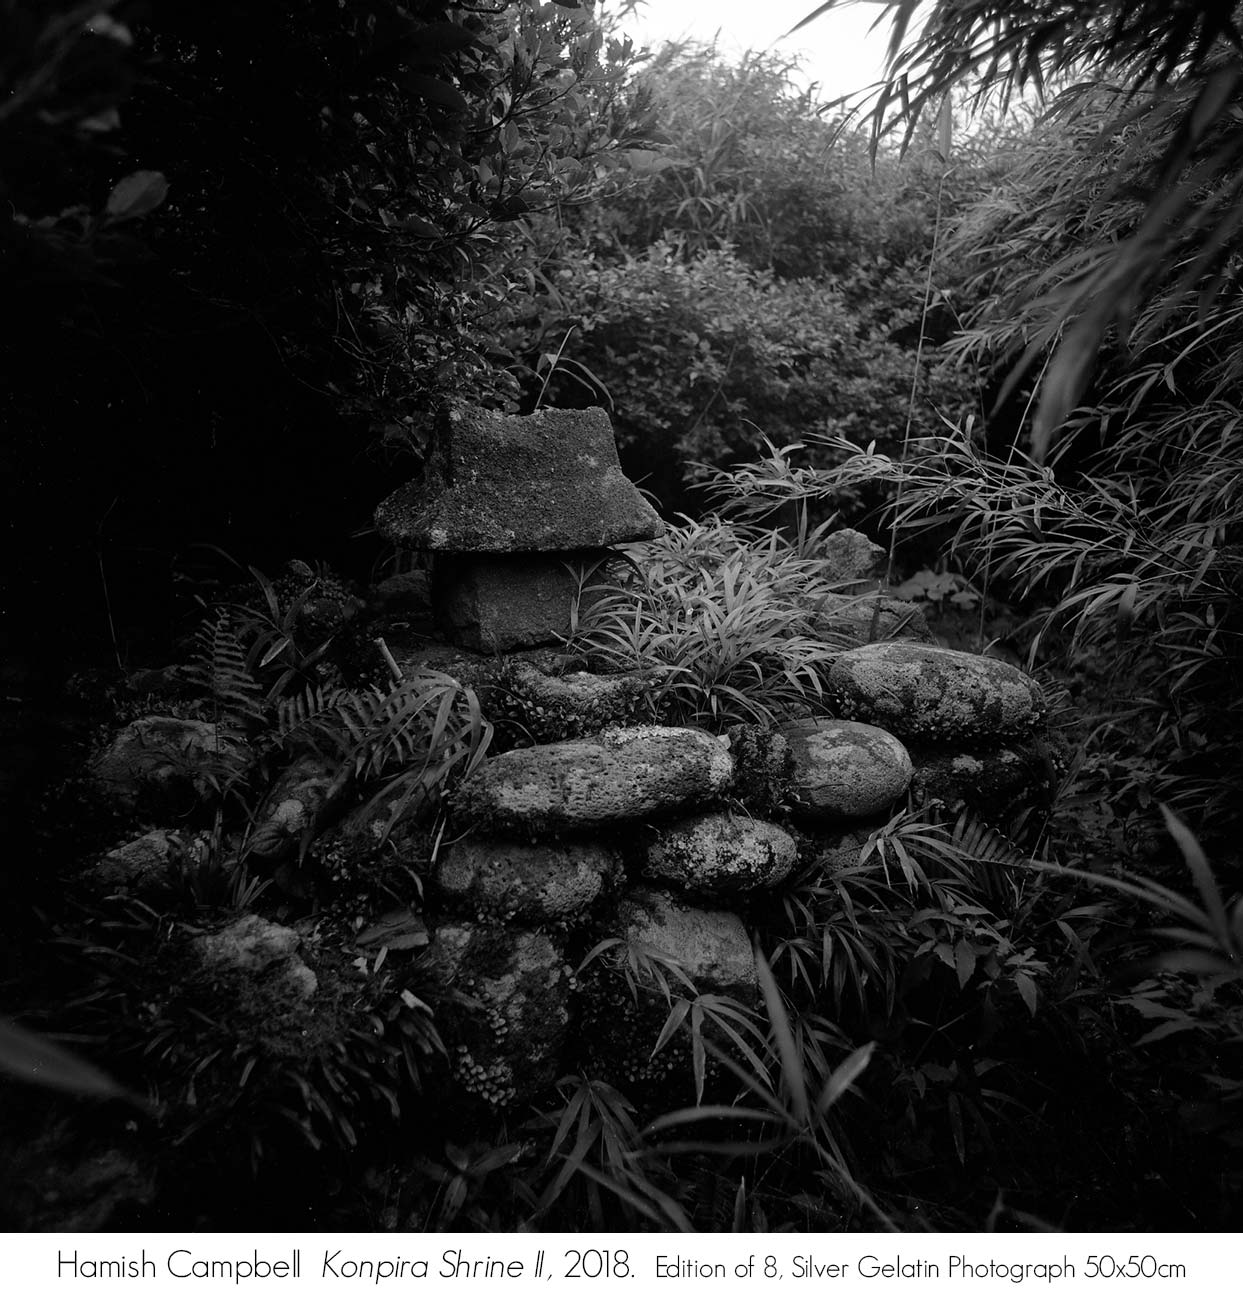 Hamish Campbell: Aogashima - life among the twin calderas. Head On Photo Festival 2018 Exhibition. Artsite Galleries, Sydney 05 - 27 May 2018.